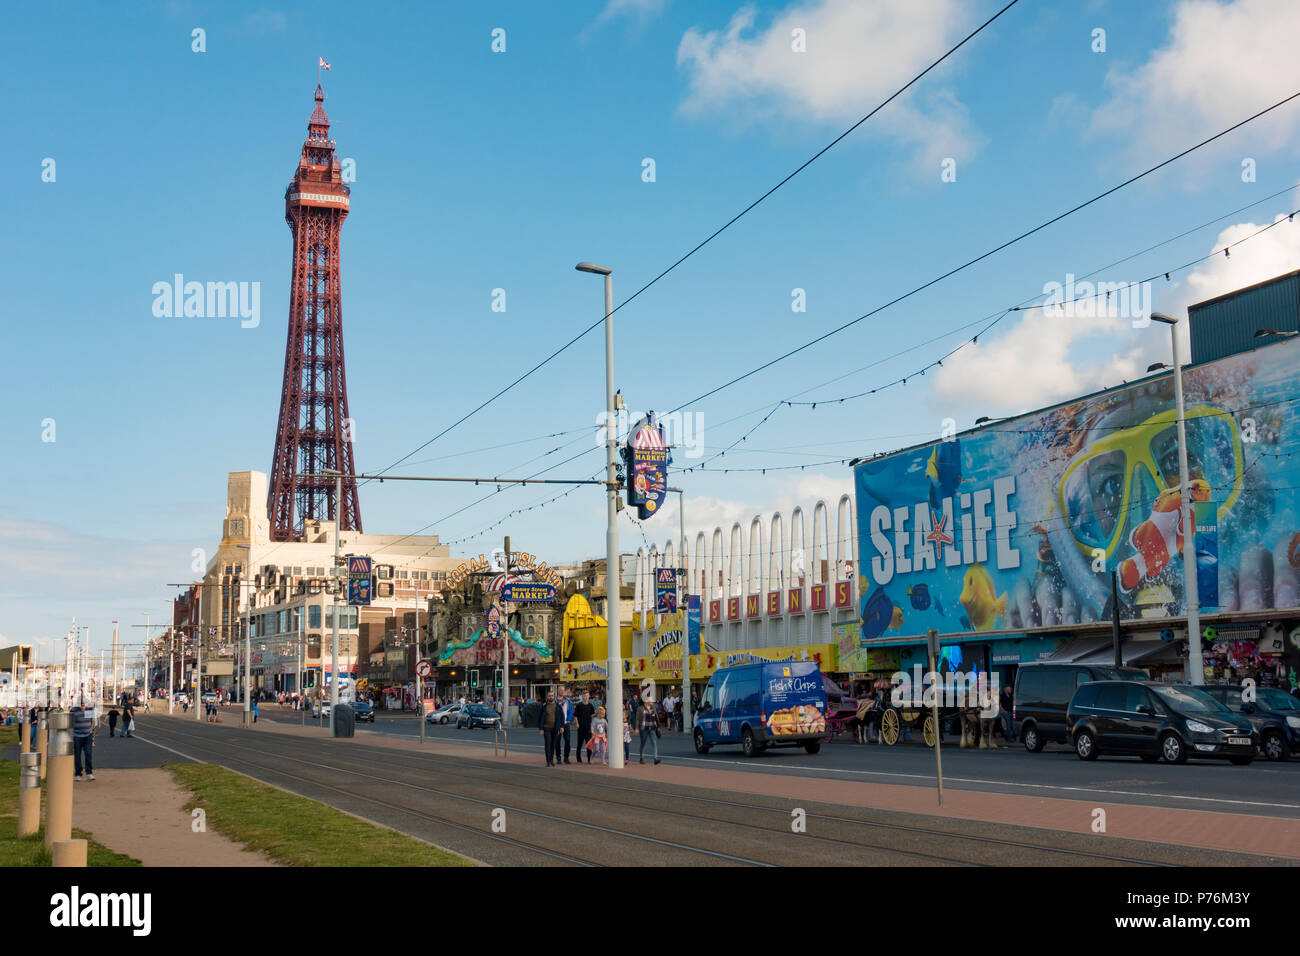 Blackpool Tower and Sea Life Centre - Stock Image